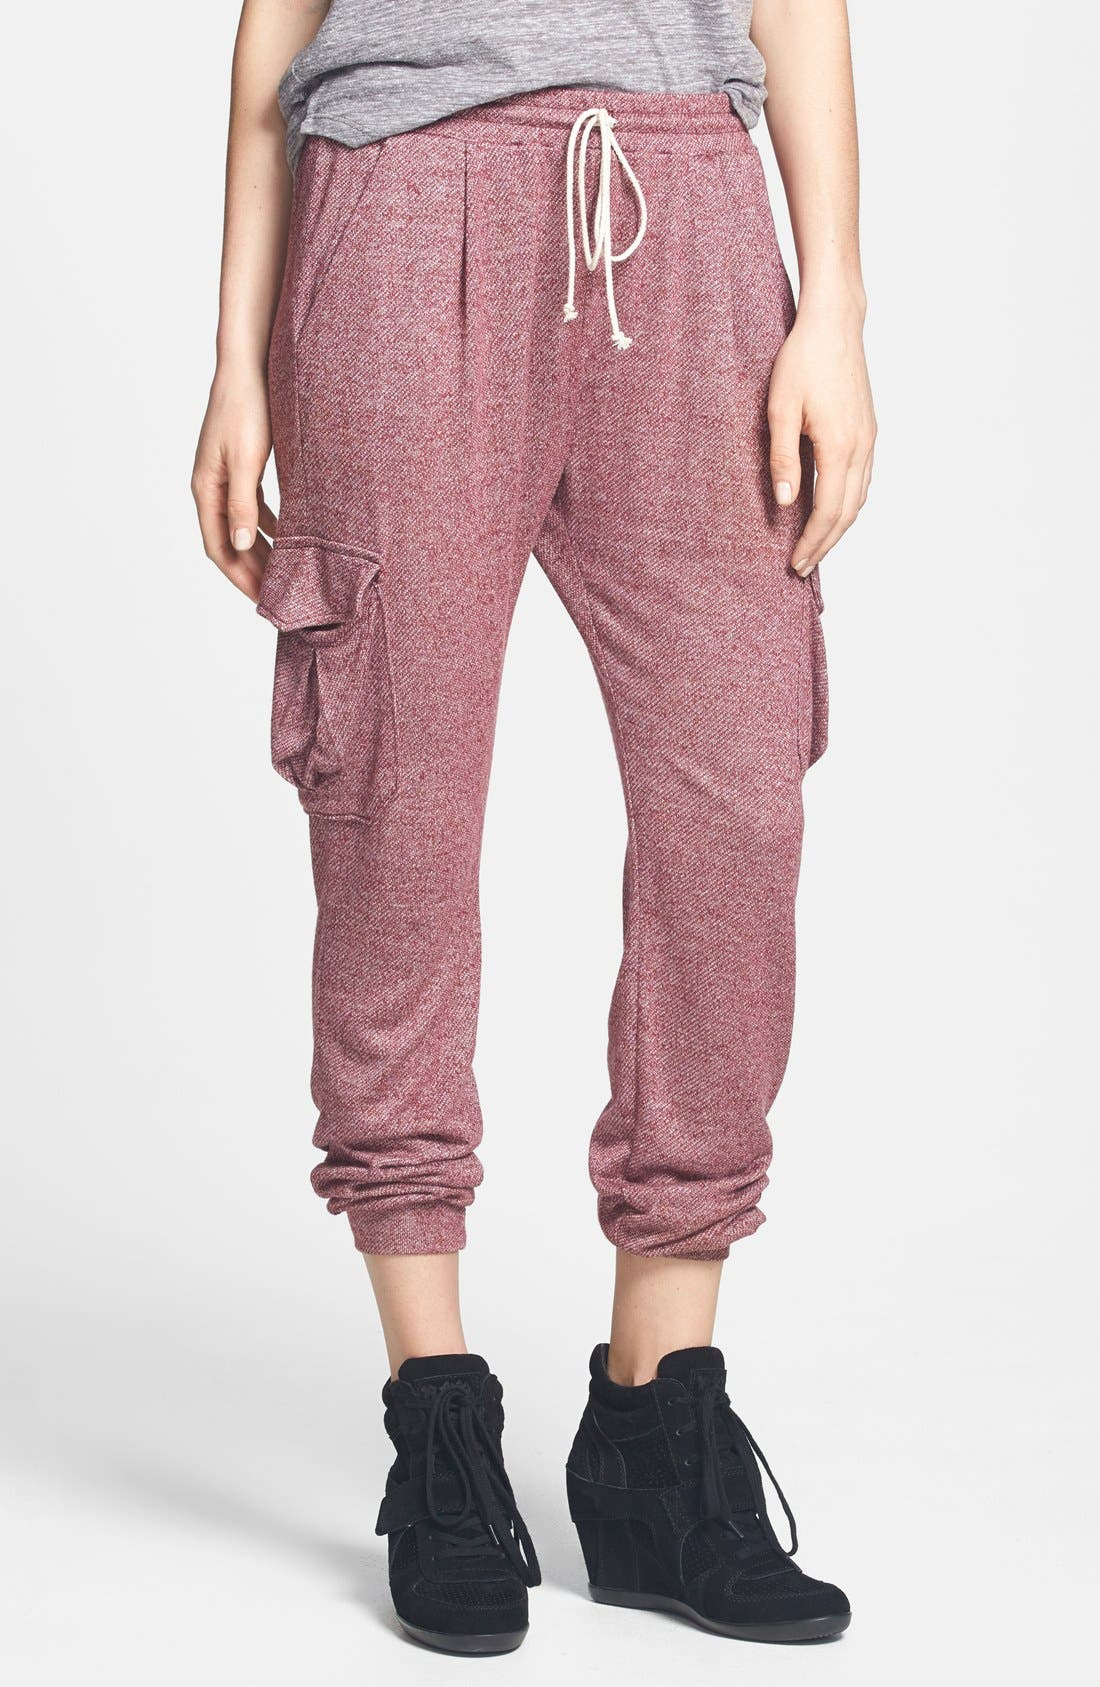 Alternate Image 1 Selected - Lily White Cargo Sweatpants (Juniors) (Online Only)